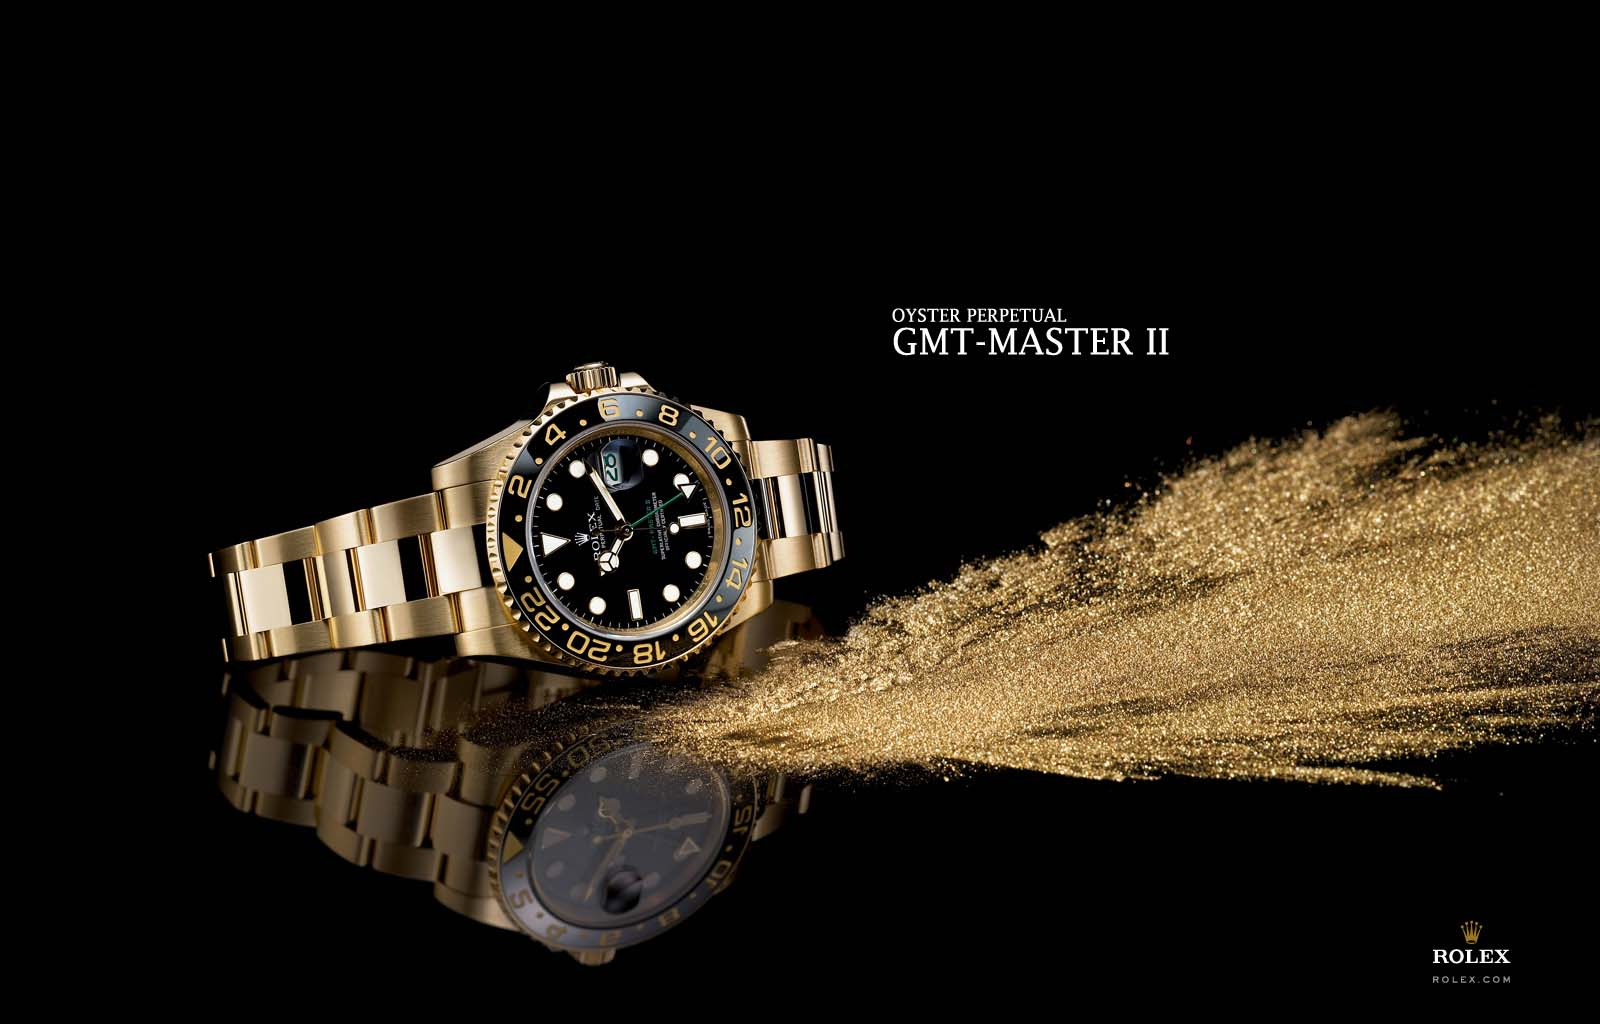 Rolex Wallpapers   Wallpaper Cave A MILLION OF WALLPAPERS COM  ROLEX WATCHES WALLPAPERS